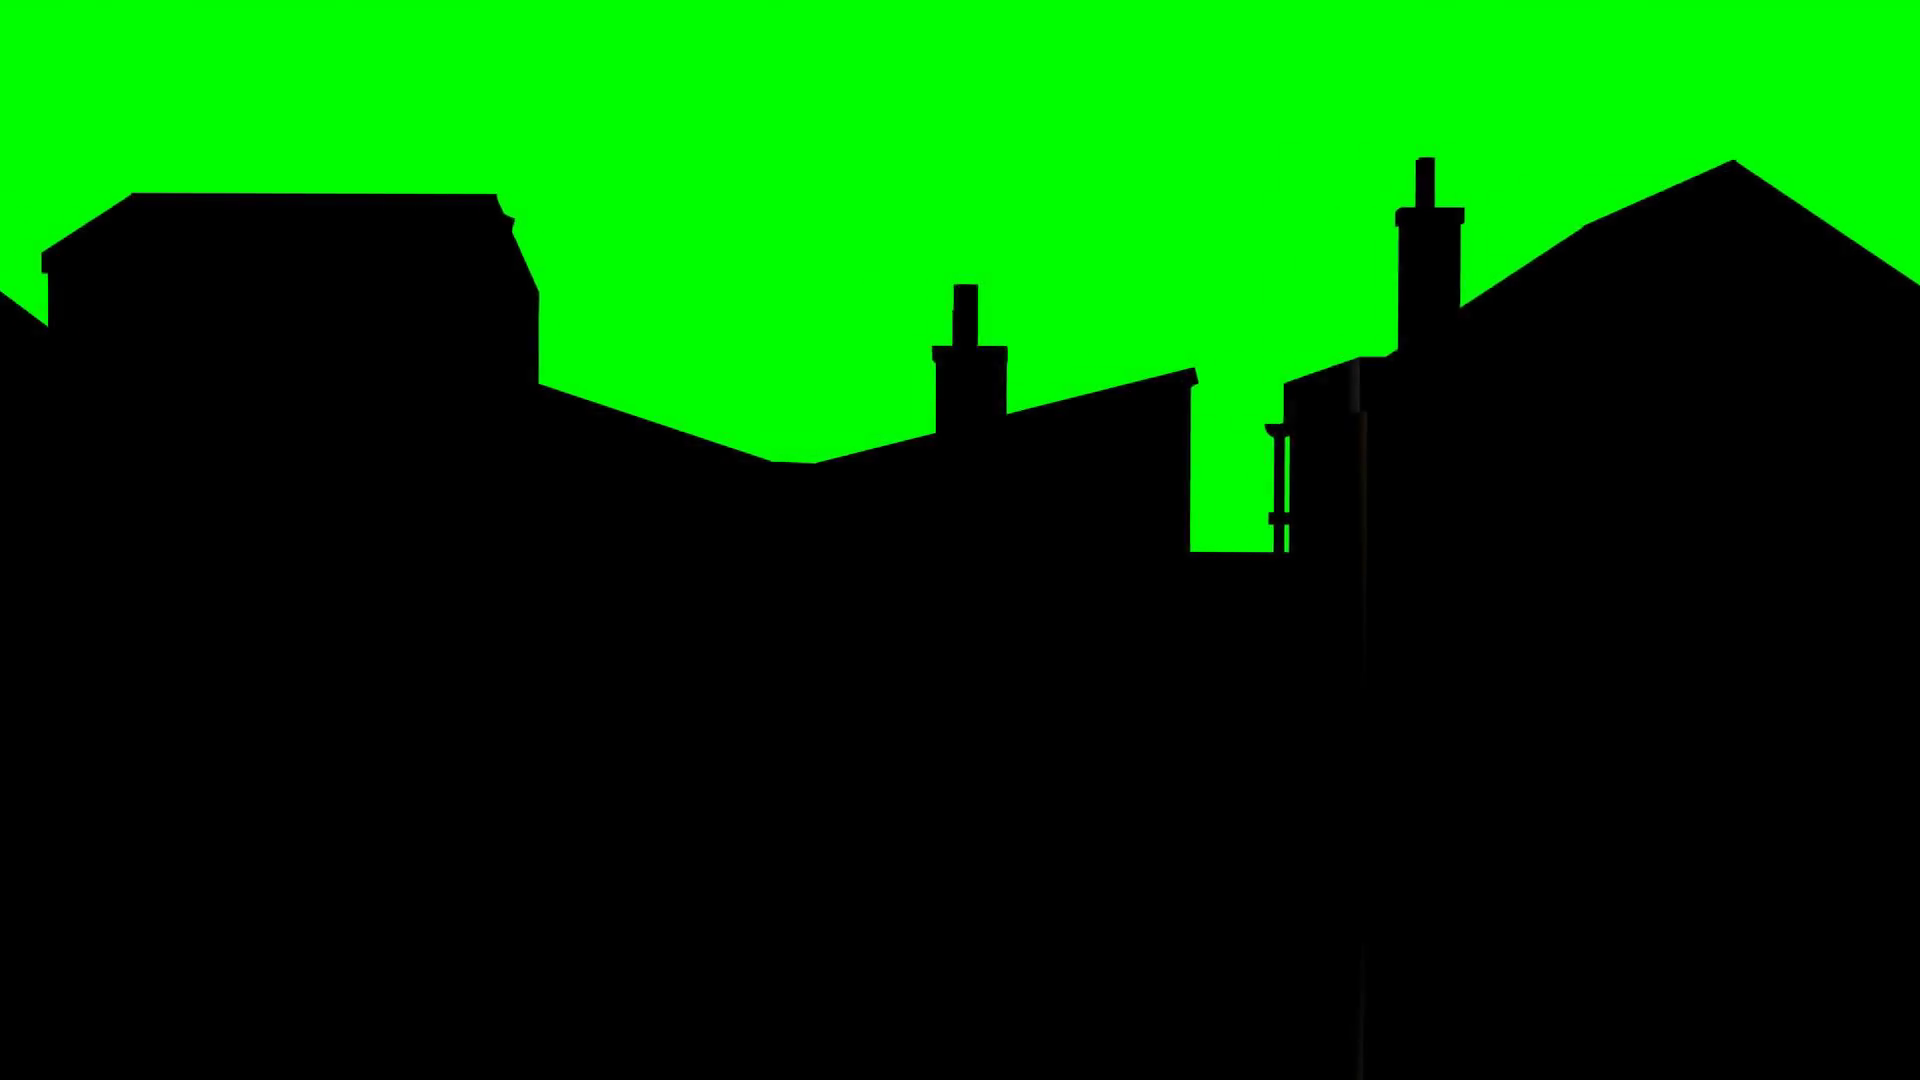 1920x1080 Tracking Shot Buildings In Silhouette Green Screen Motion